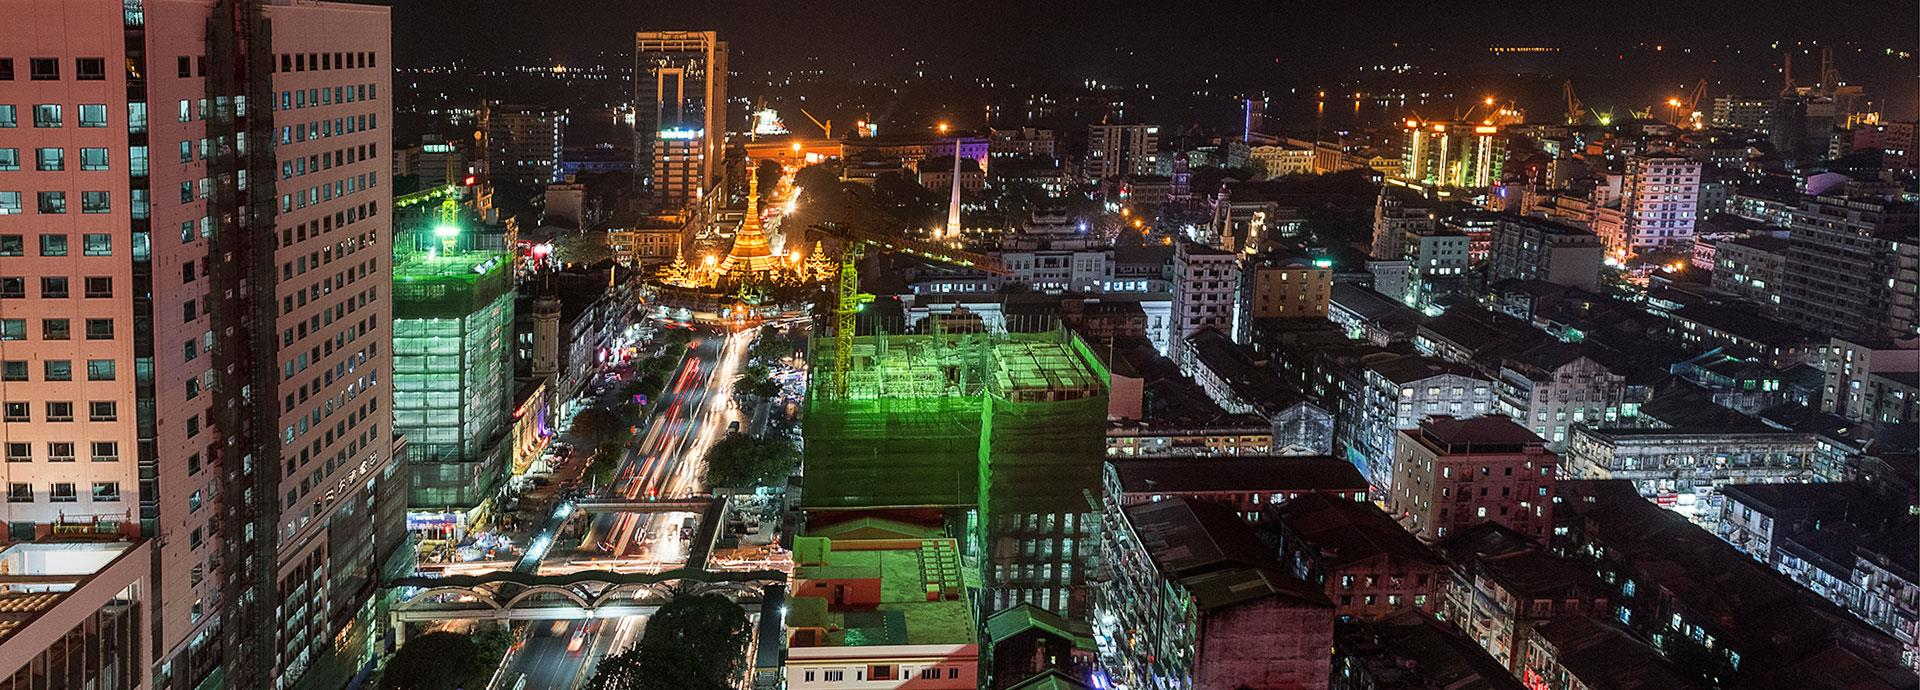 Evaluating various cogeneration solutions for industrial parks in Myanmar